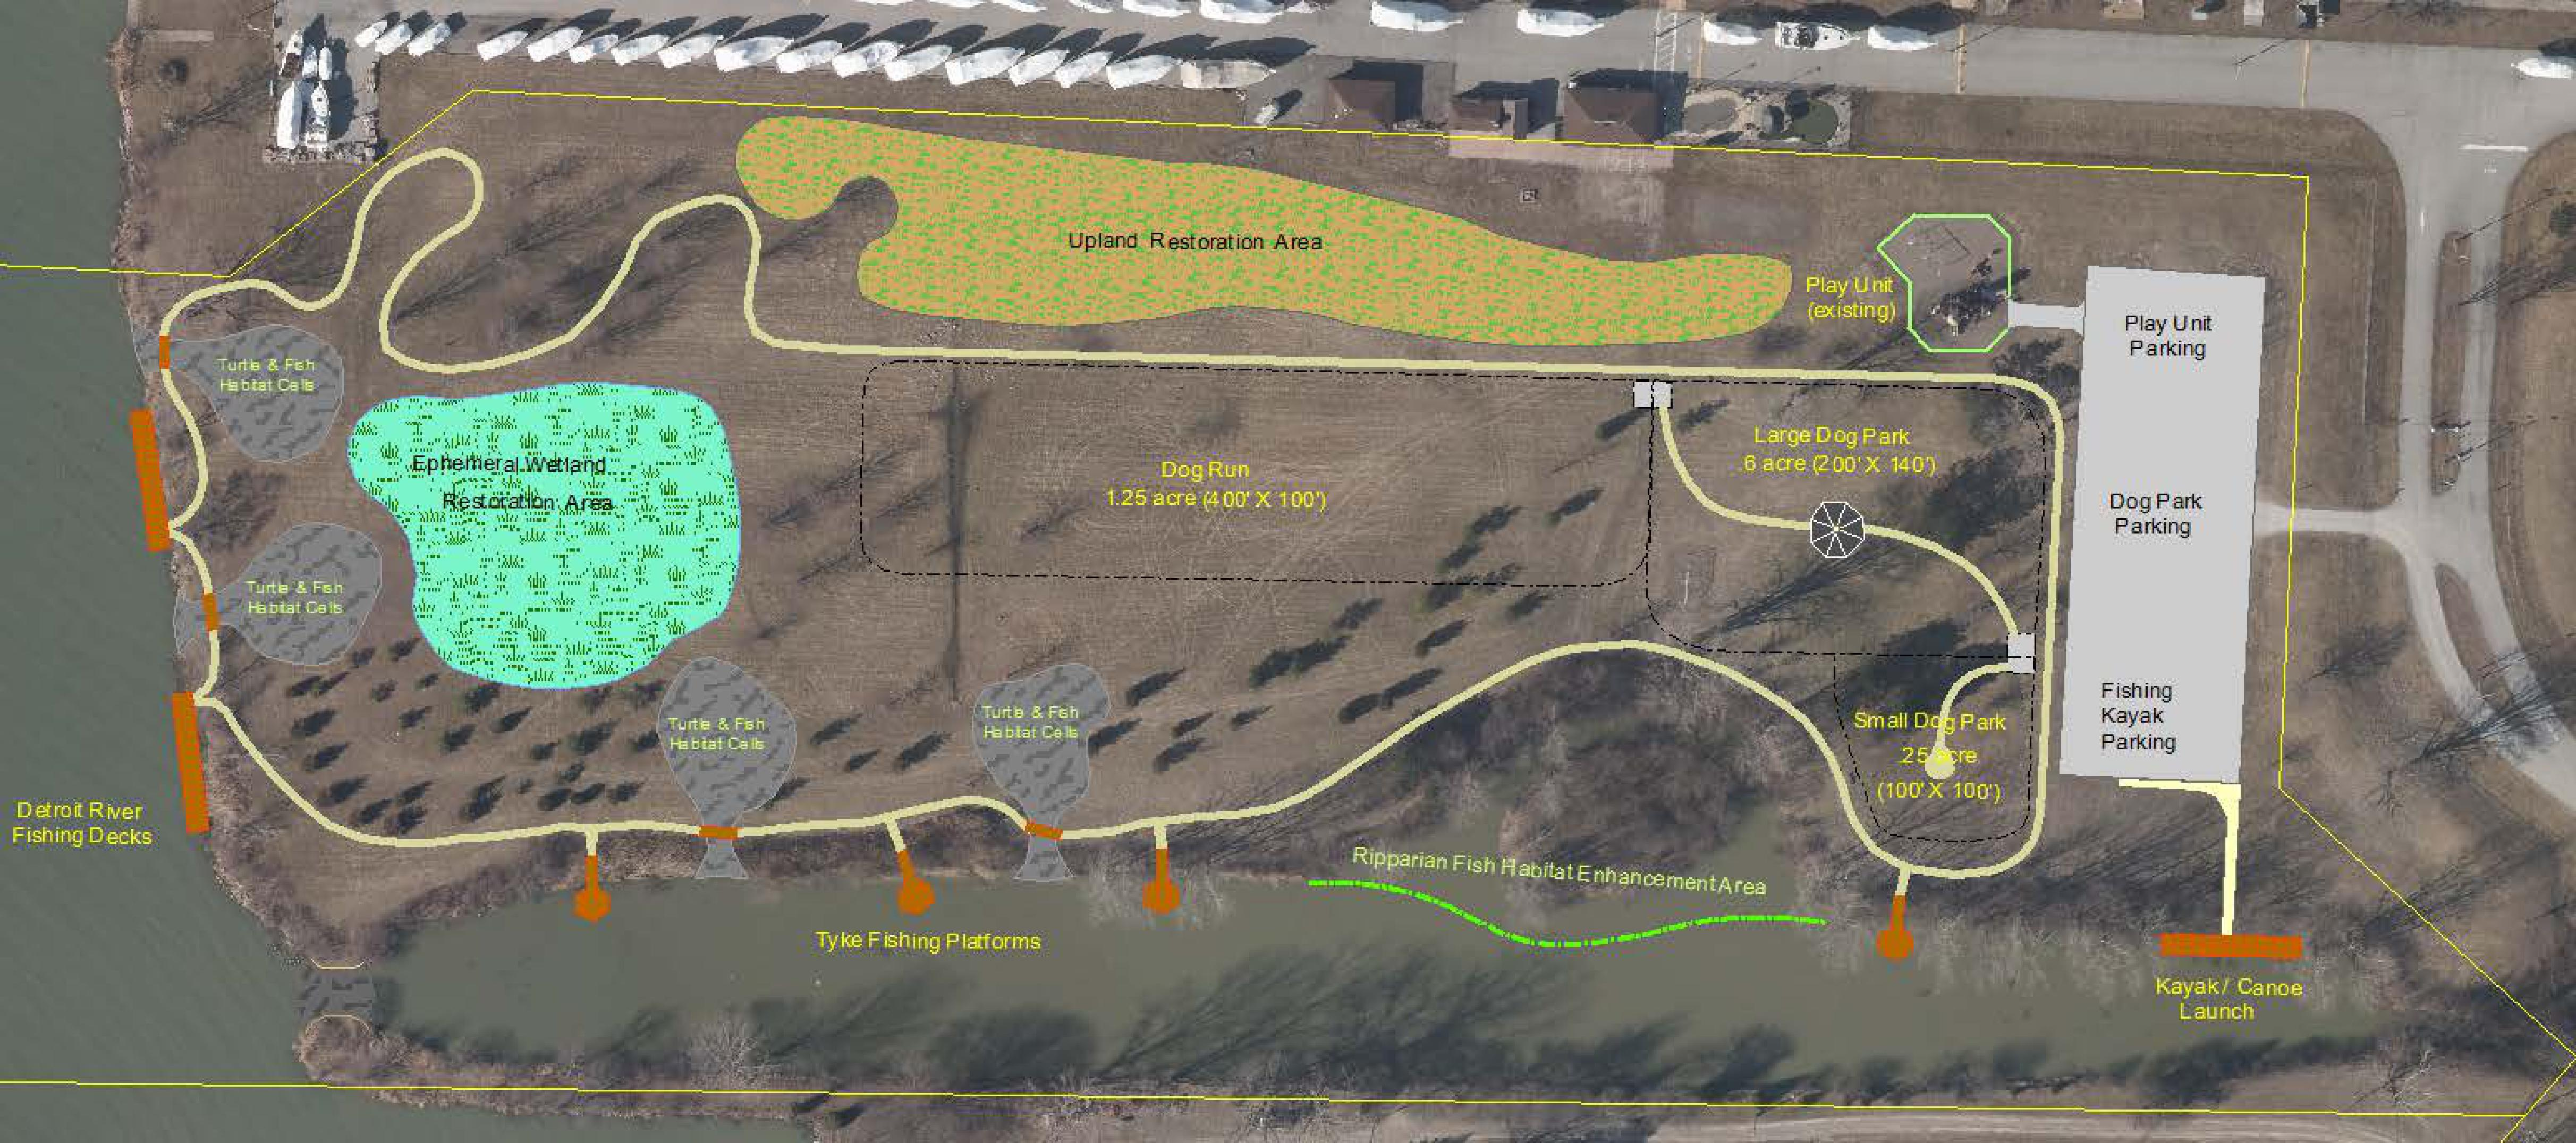 The proposed redesign of Ranta Park featuring an 800-metre walking trail, dog park, fishing decks and an accessible kayak and canoe launch.